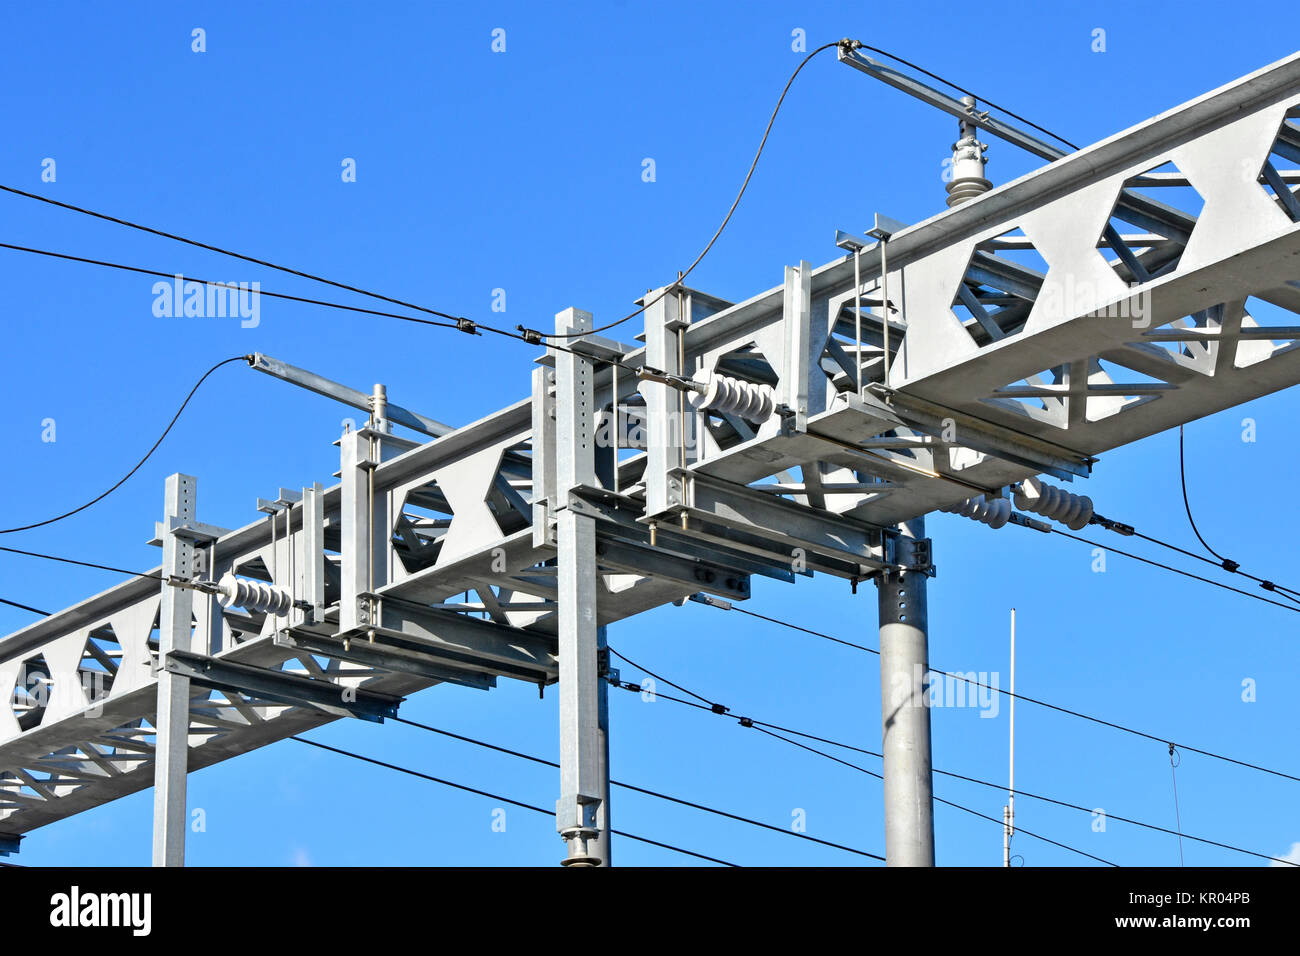 Twin castellated steel beams in gantry for overhead electricity cables powering electric trains on main line railway - Stock Image